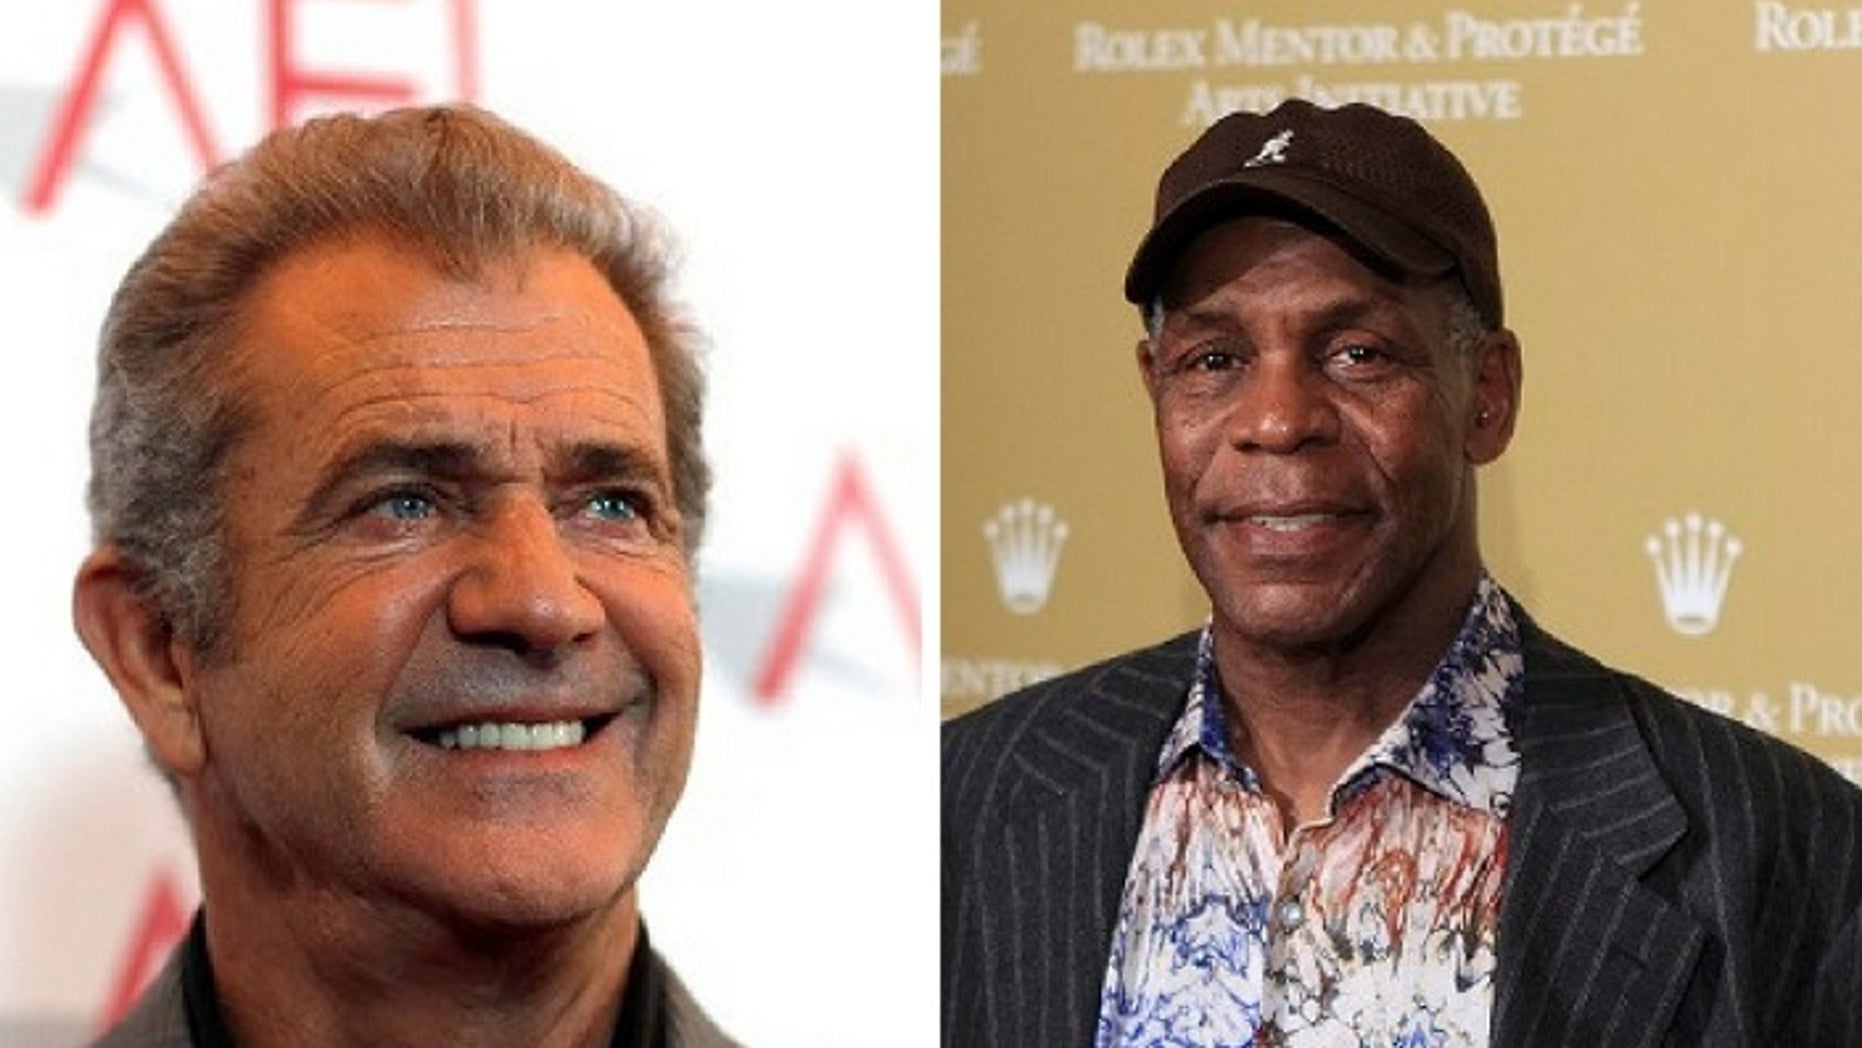 """""""Lethal Weapon 5"""" was reportedly in the works with Mel Gibson and Danny Glover set to reprise their roles."""